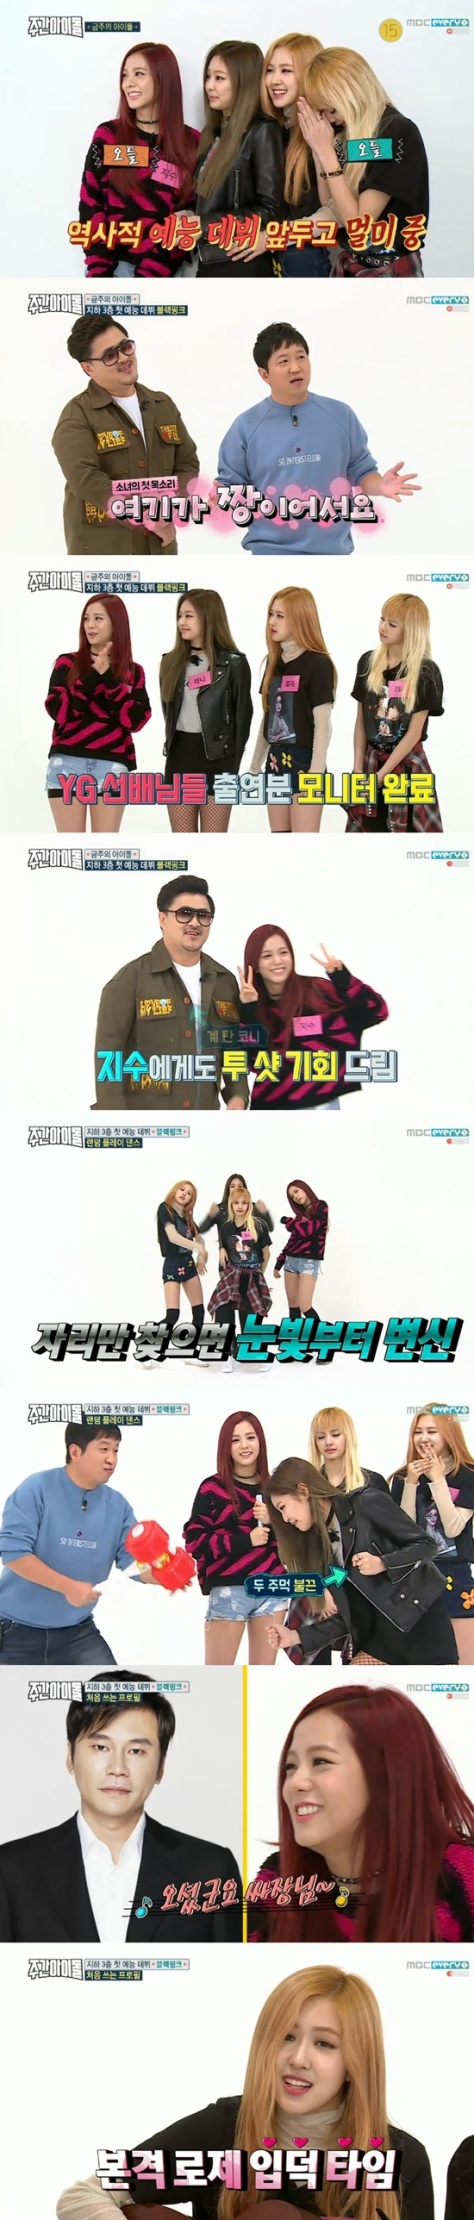 161116-blackpink-weekly-idol